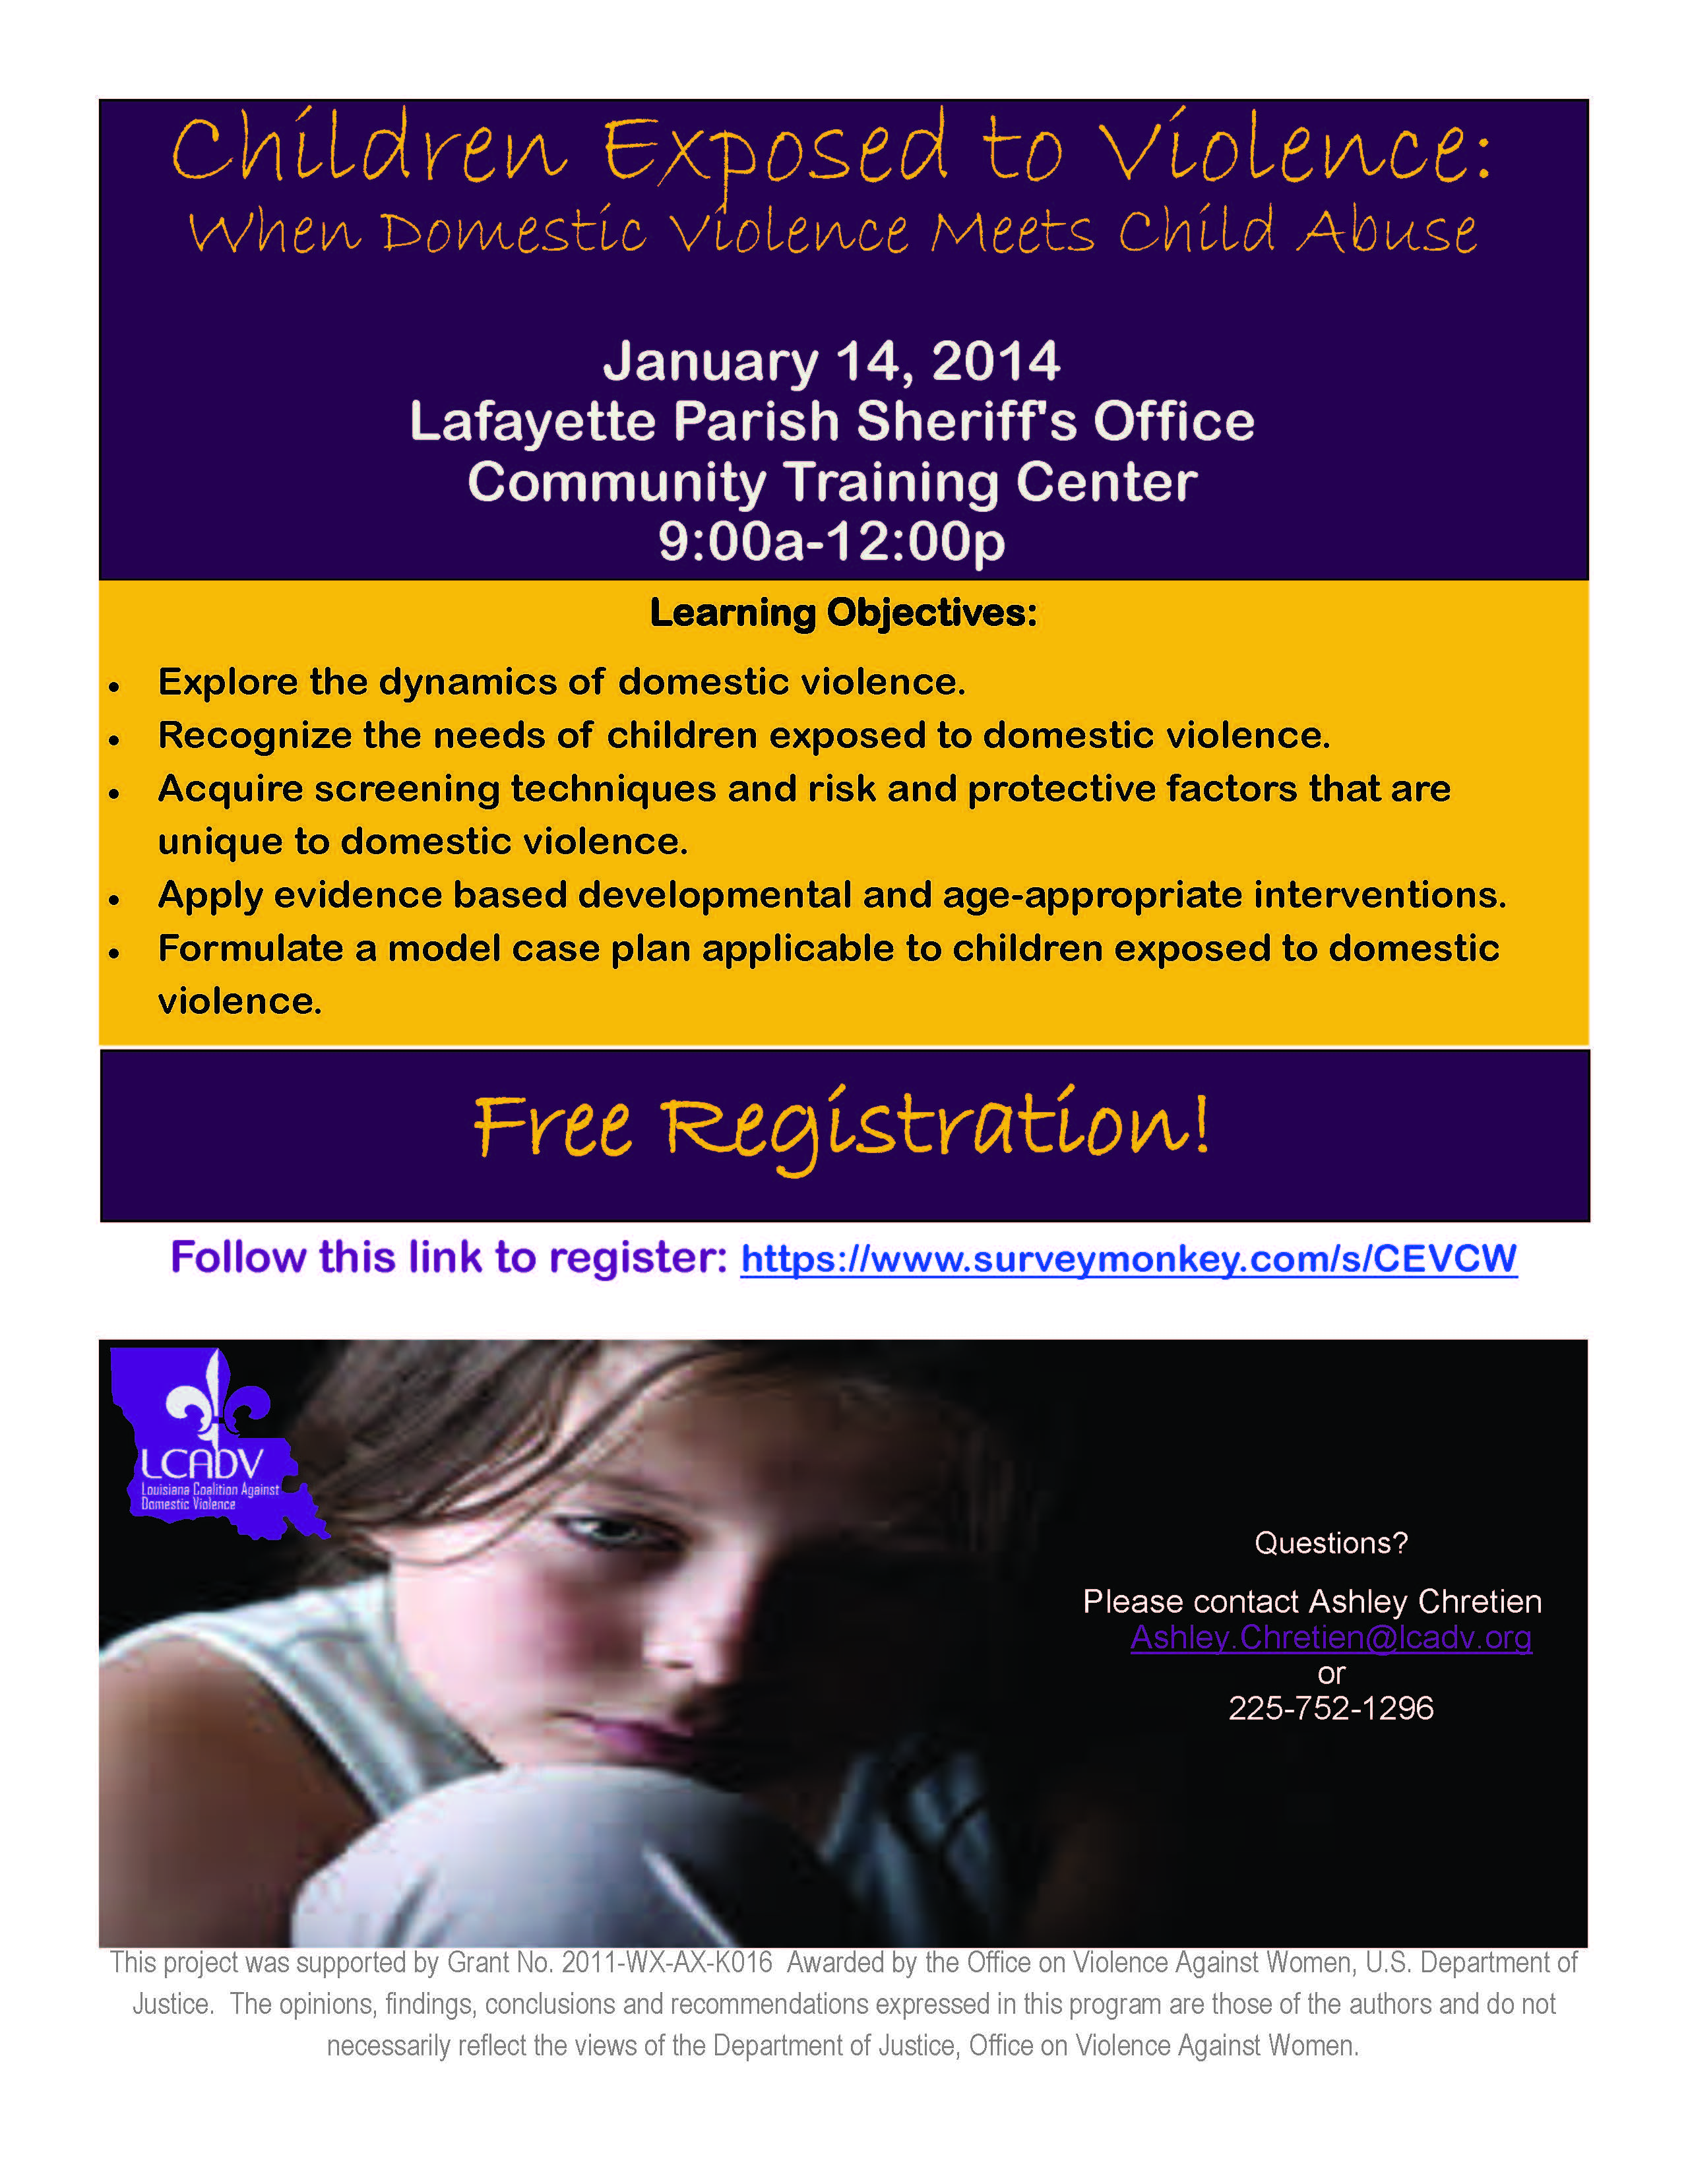 Children Exposed to Violence: When Domestic Violence Meets Child Abuse @ Lafayette Parish Sheriff's Office Community Training Center | Lafayette | Louisiana | United States